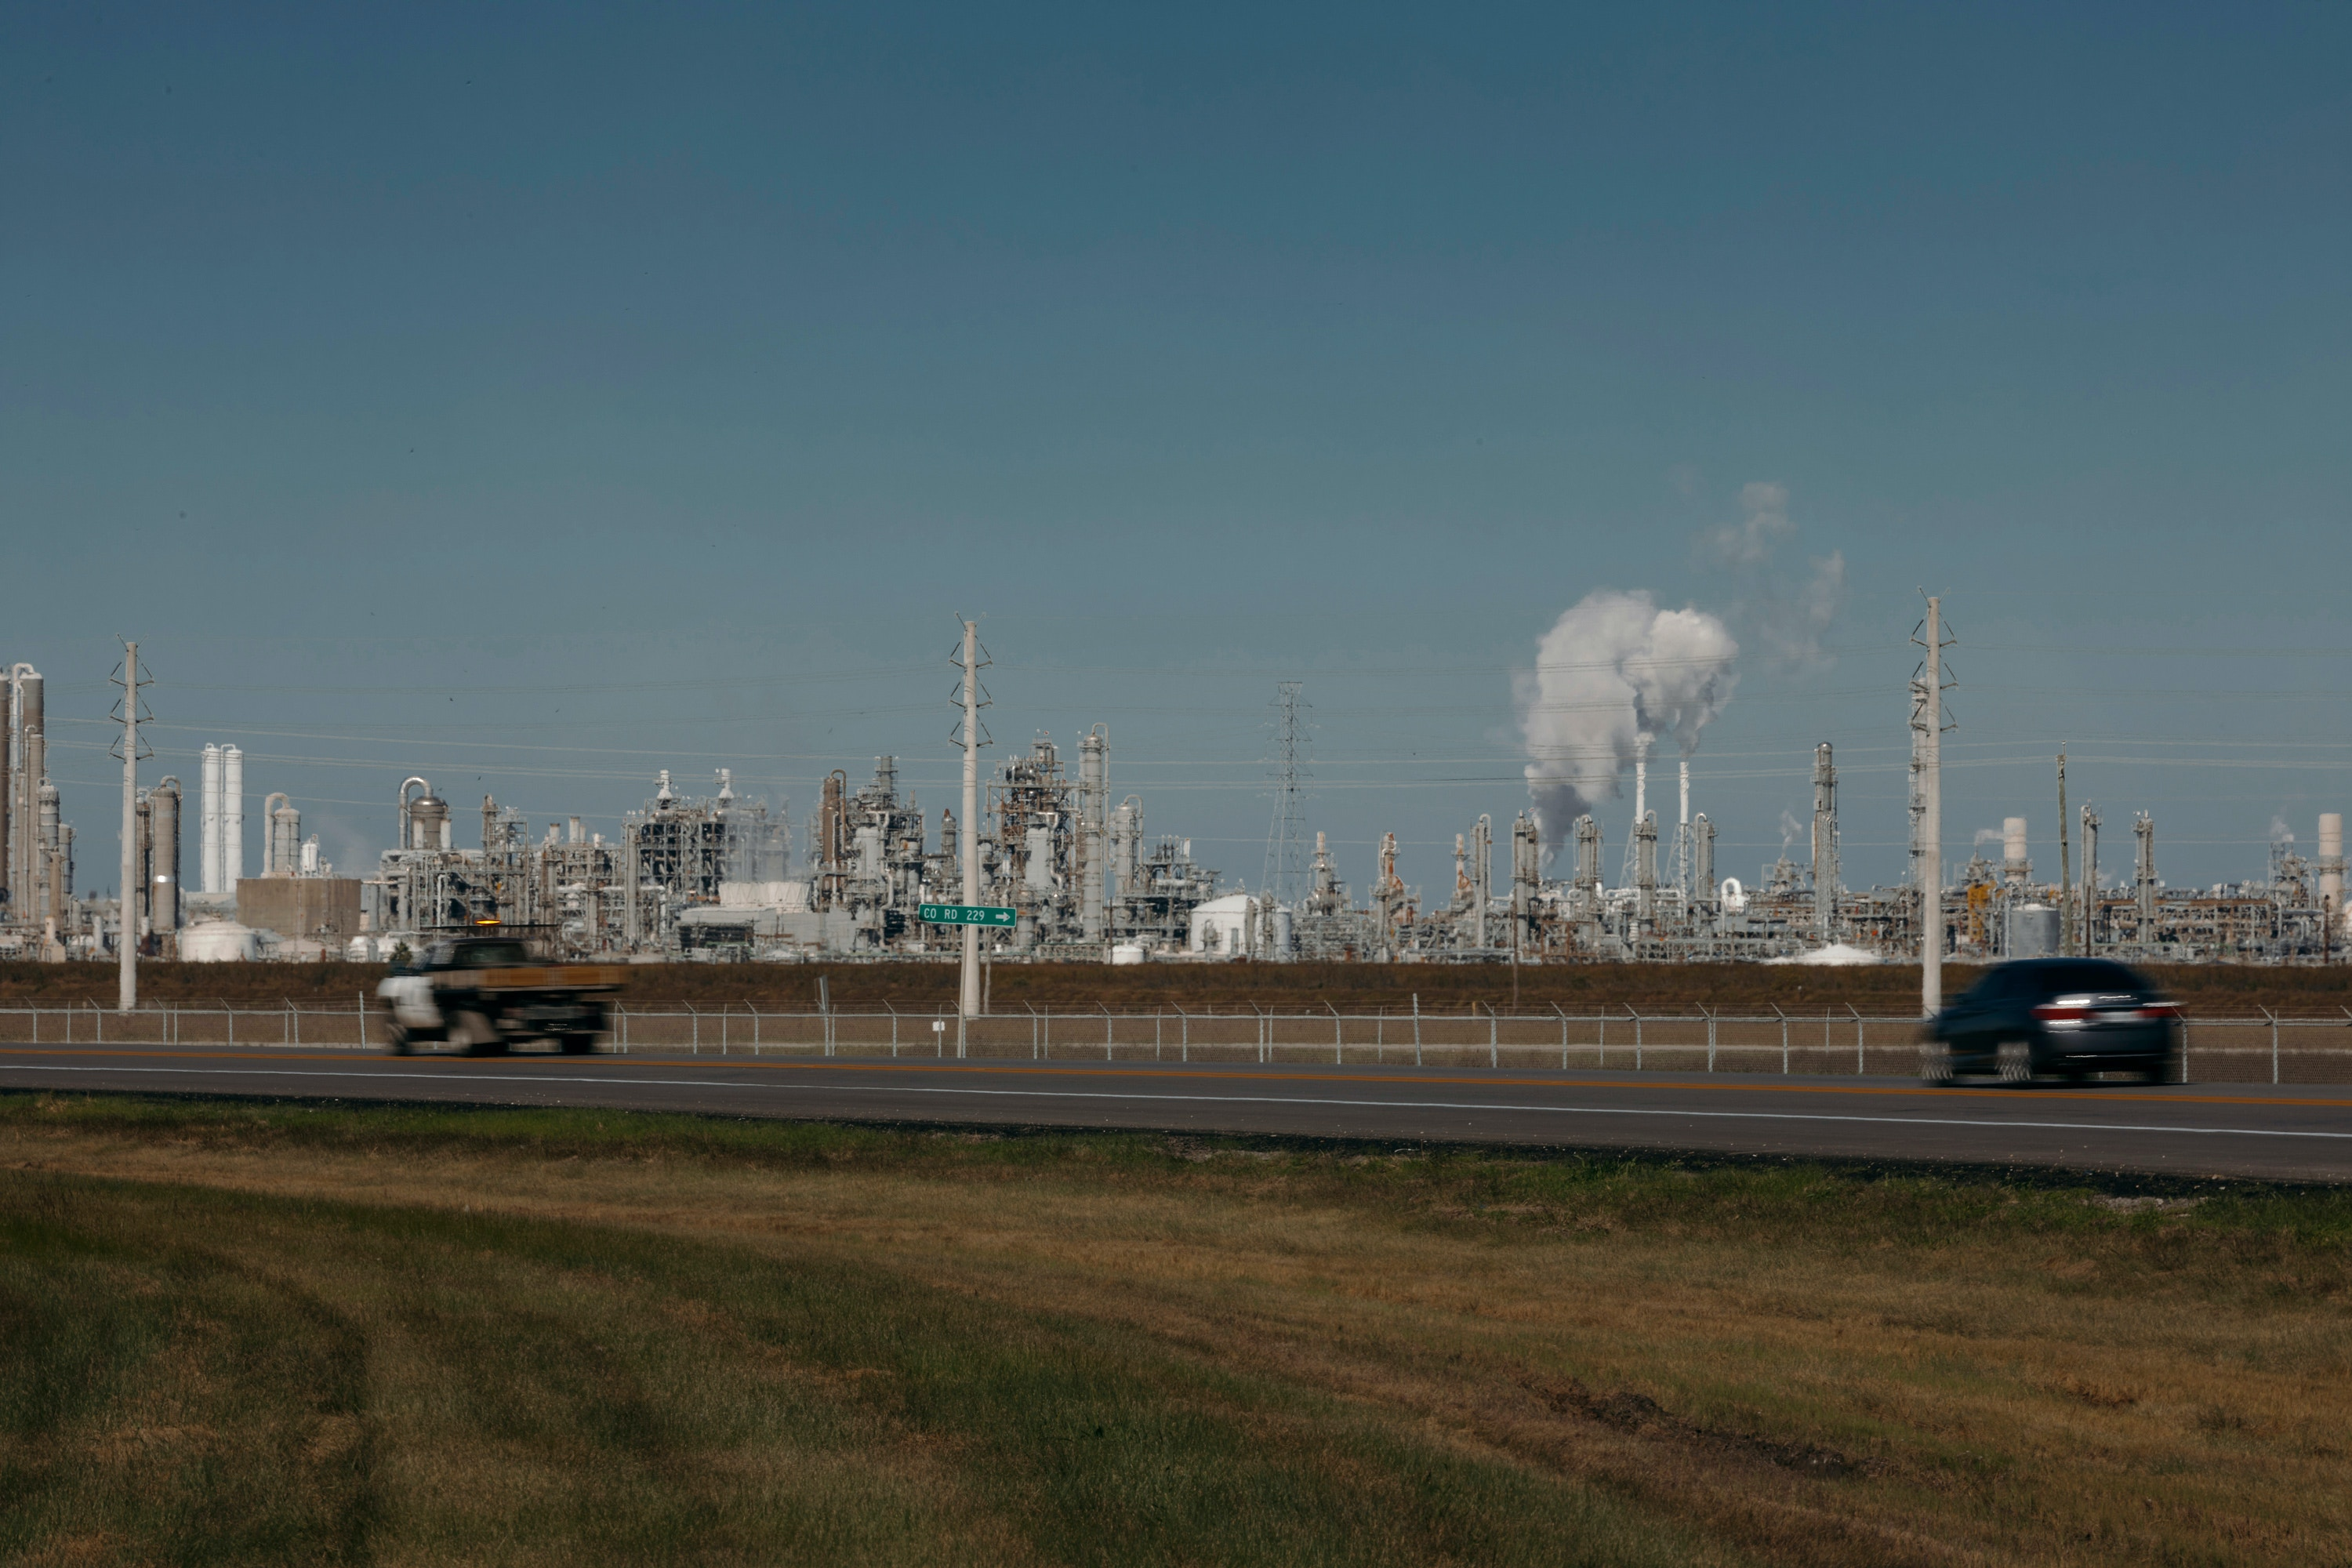 Scenes from Freeport, Texas on Wednesday, December 18th, 2019.Todd Spoth for The Intercept.